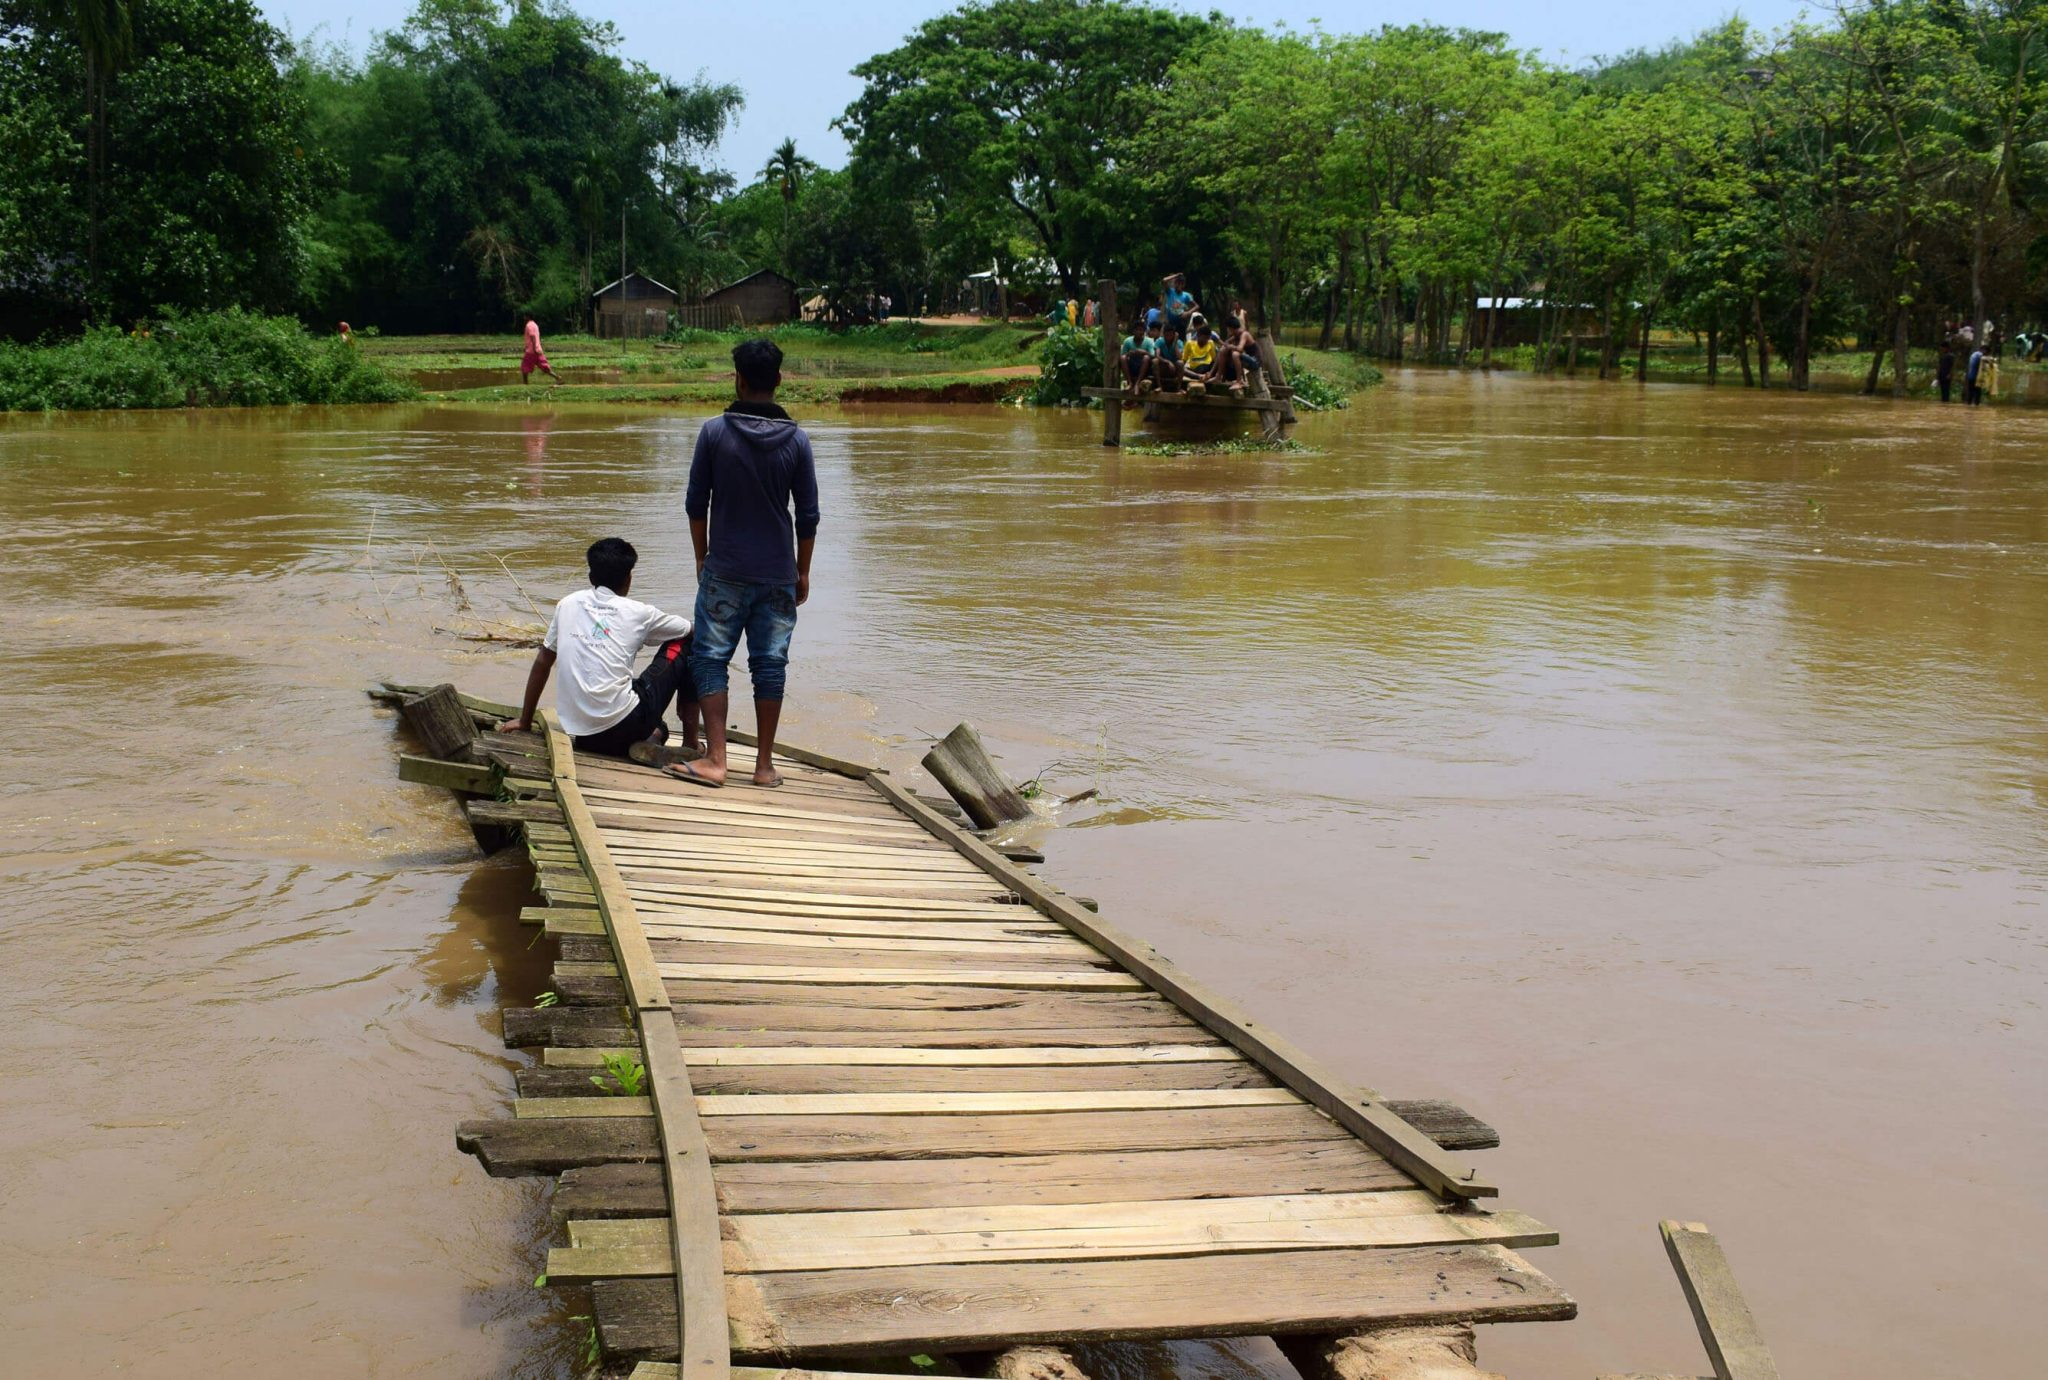 Paddy fields inundated due to heavy rain in Boko as an aftereffect of cyclone Fani